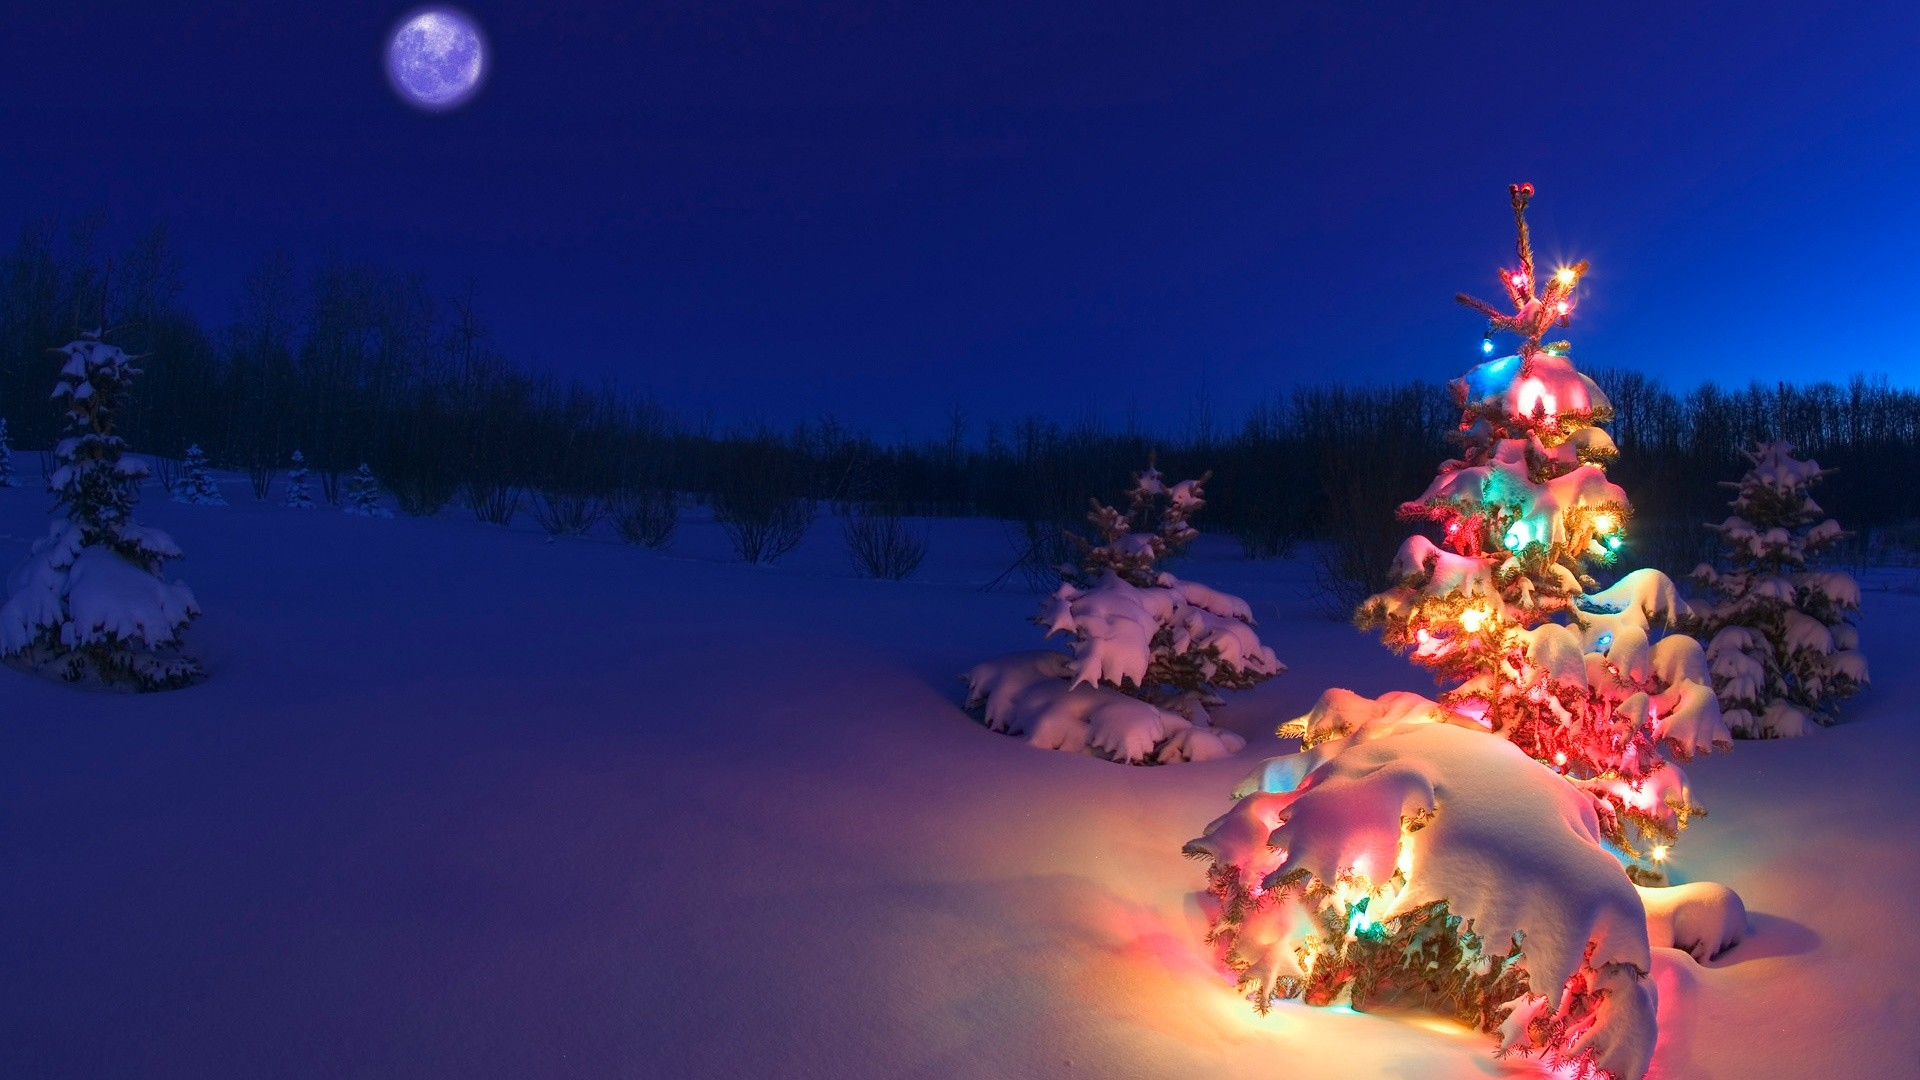 Christmas Backgrounds Wallpapers.